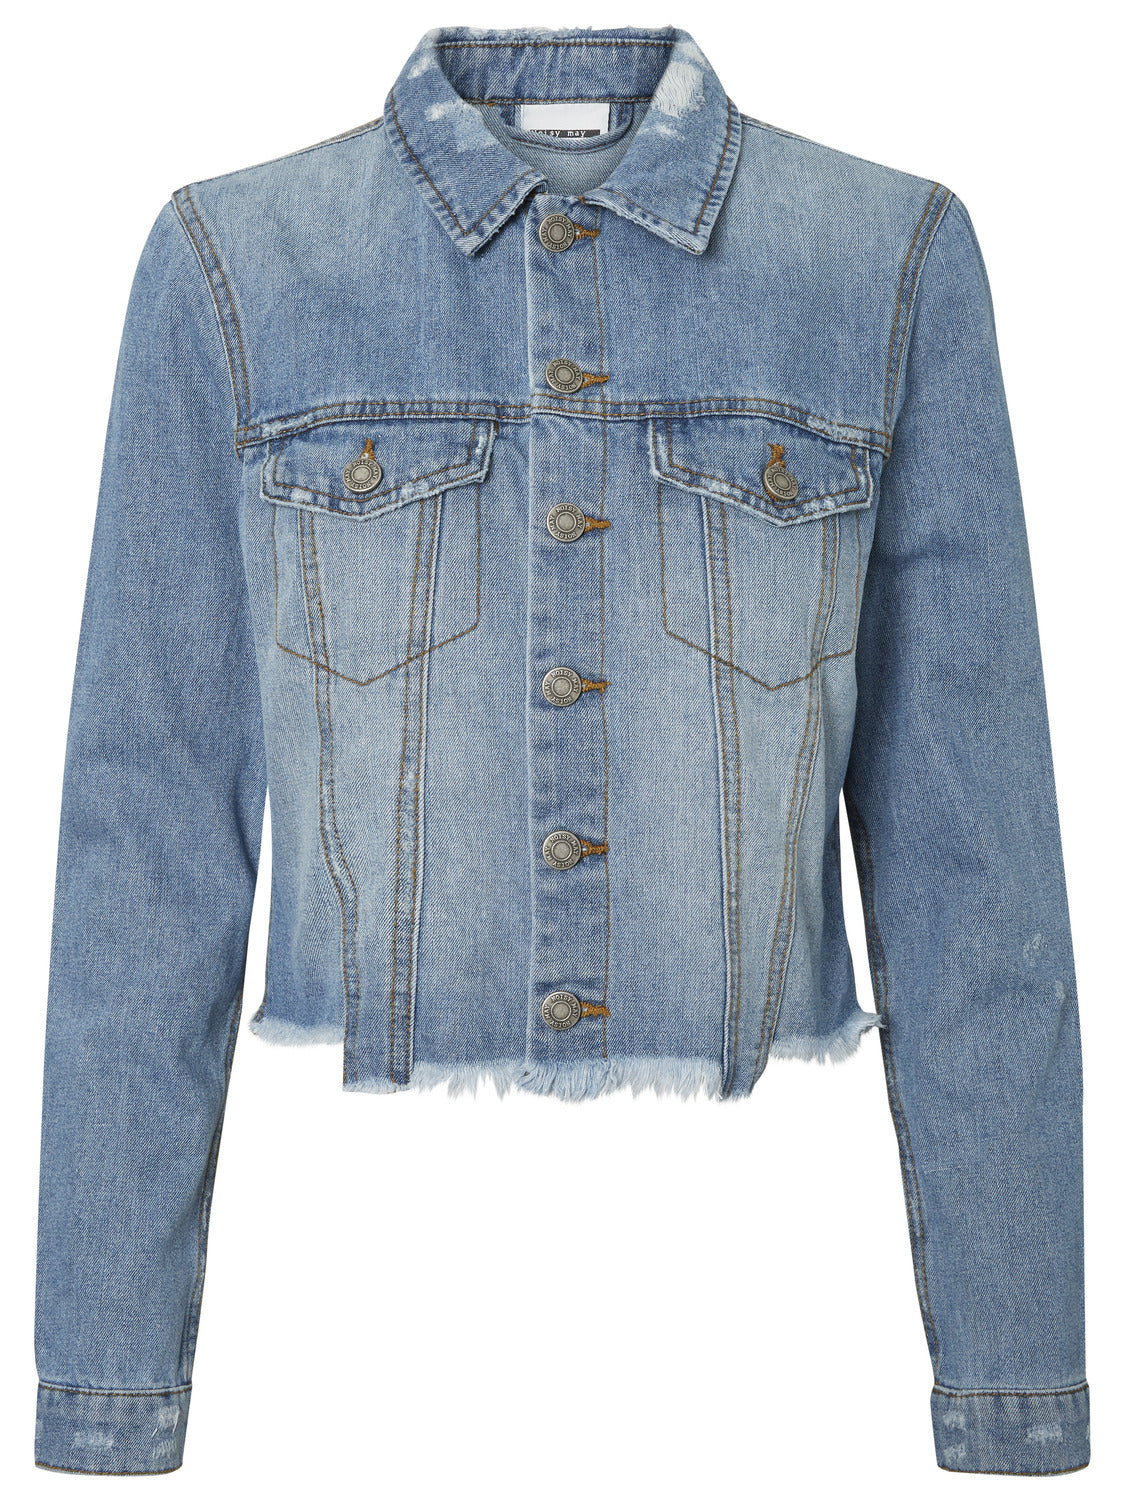 Cropped Denim Jacket - Coveted Style